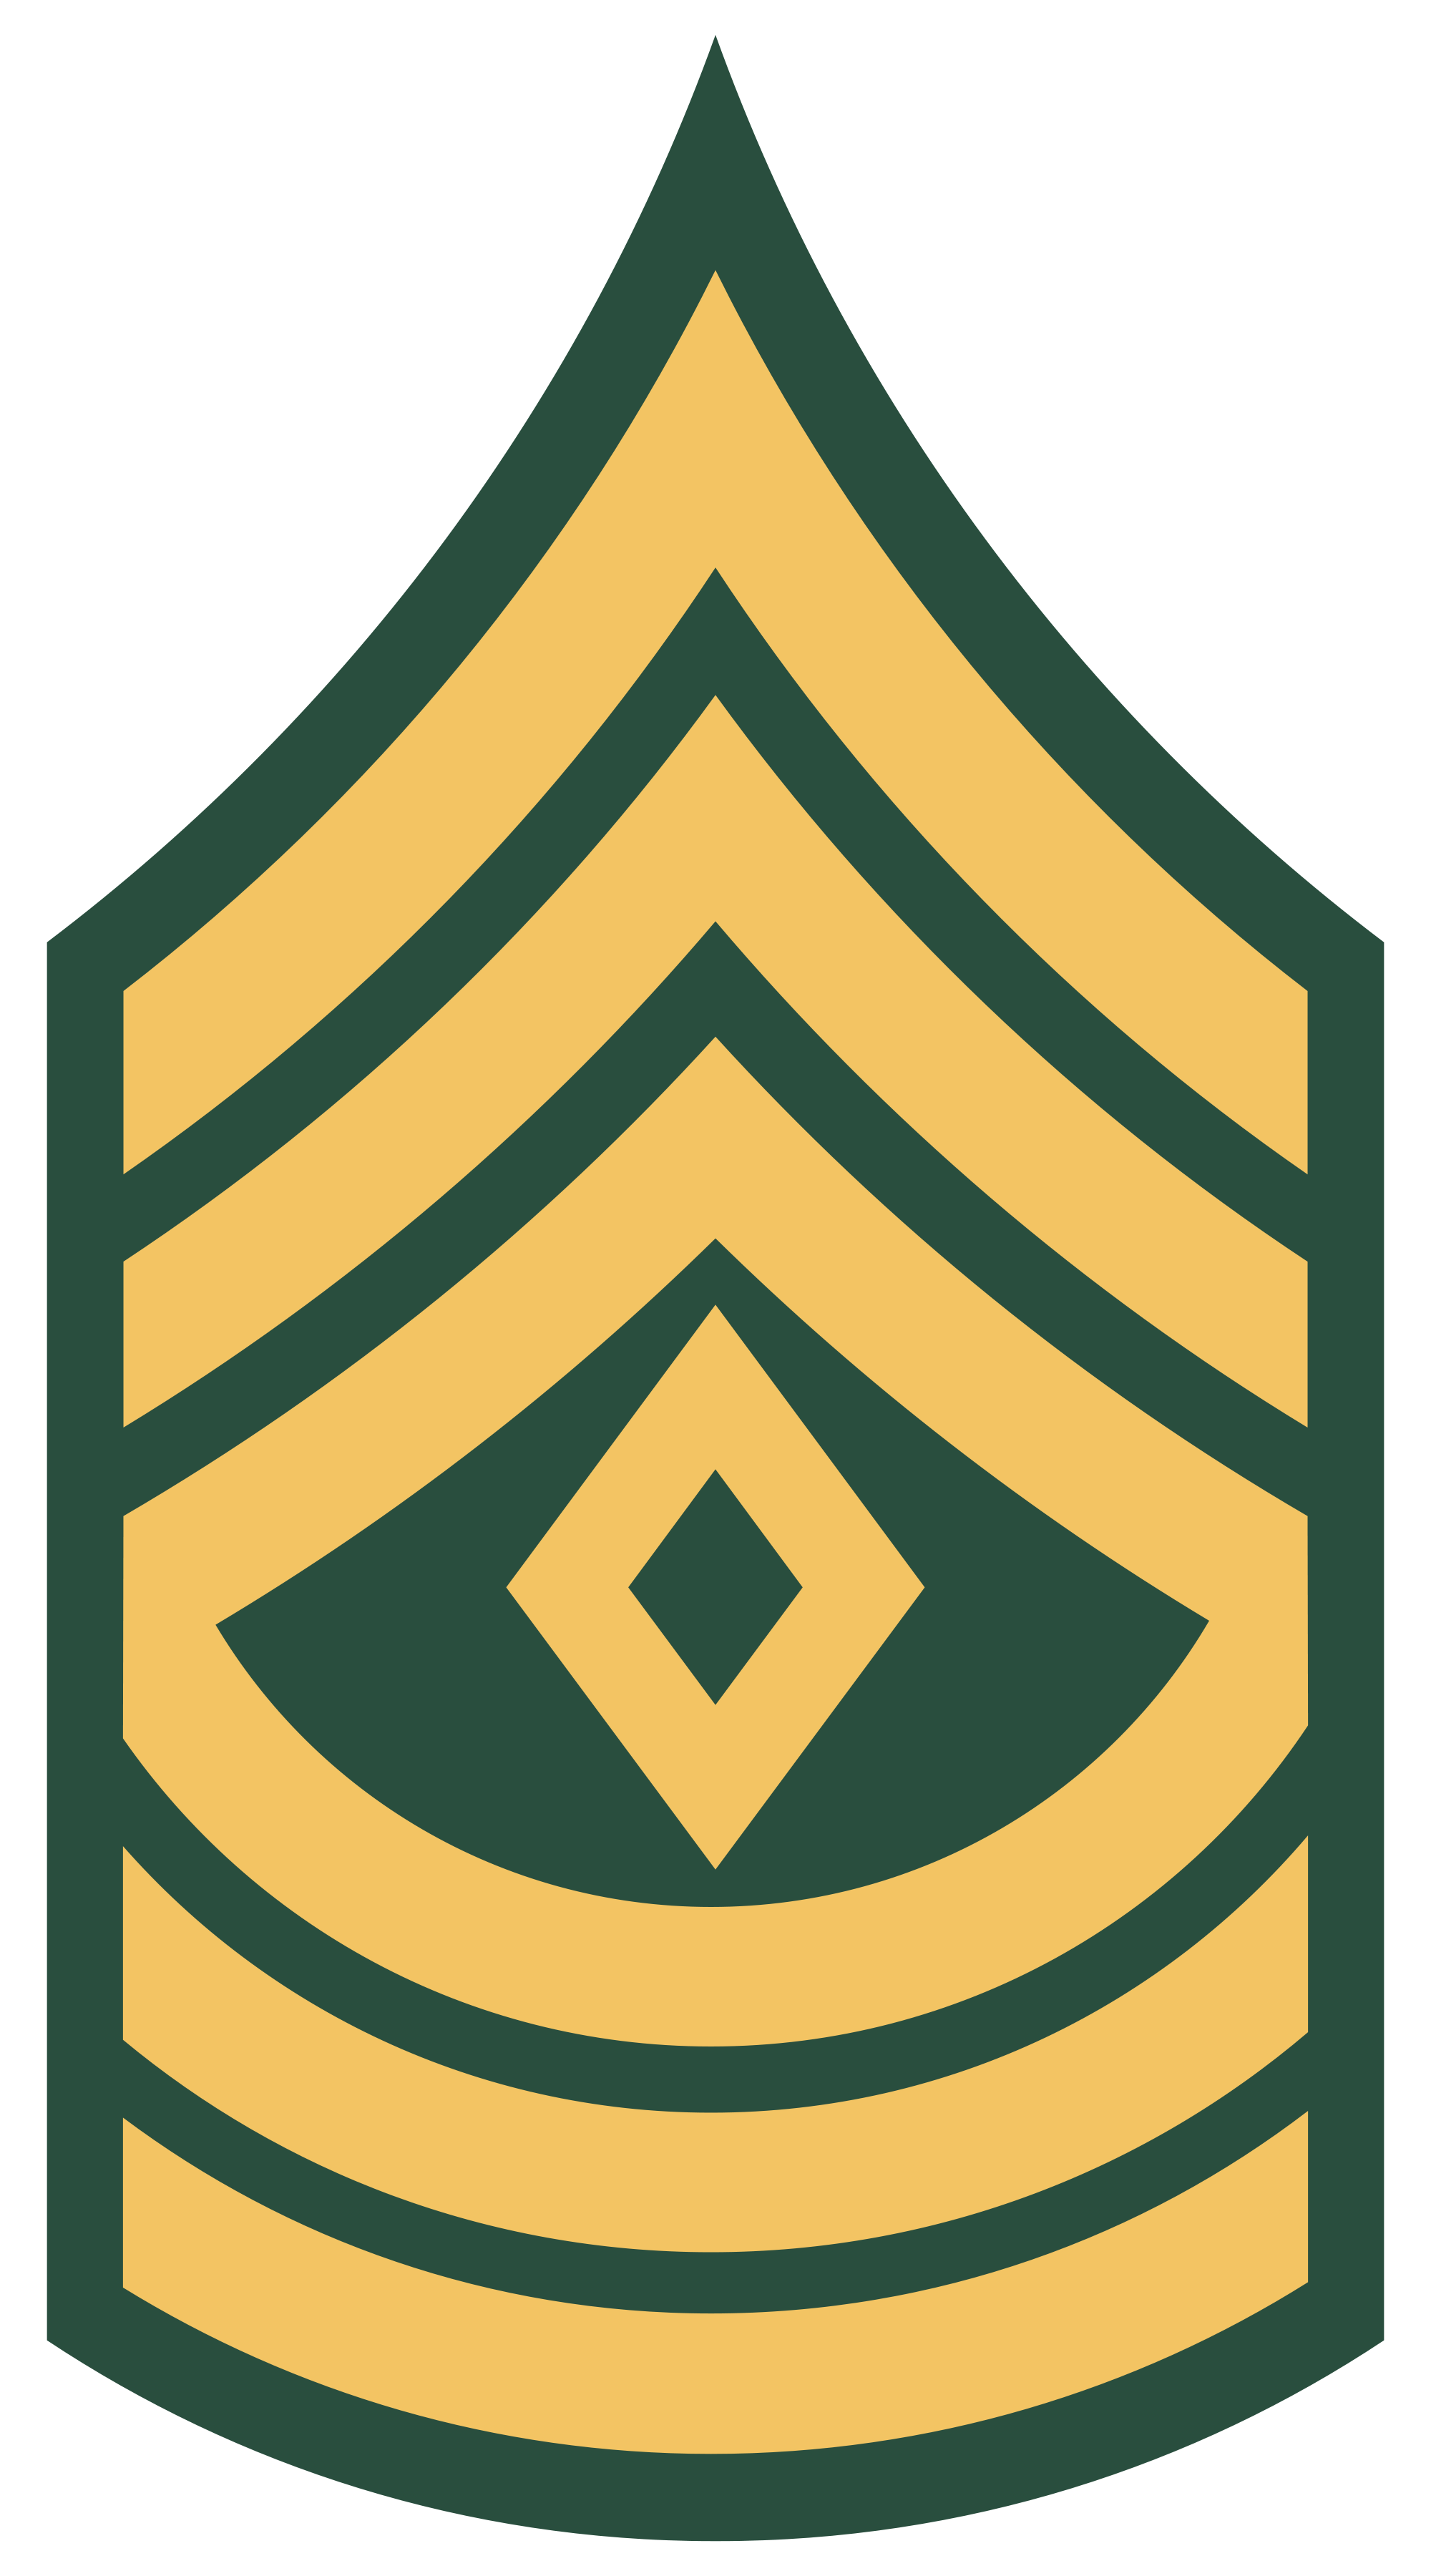 free military rank clip art - photo #3